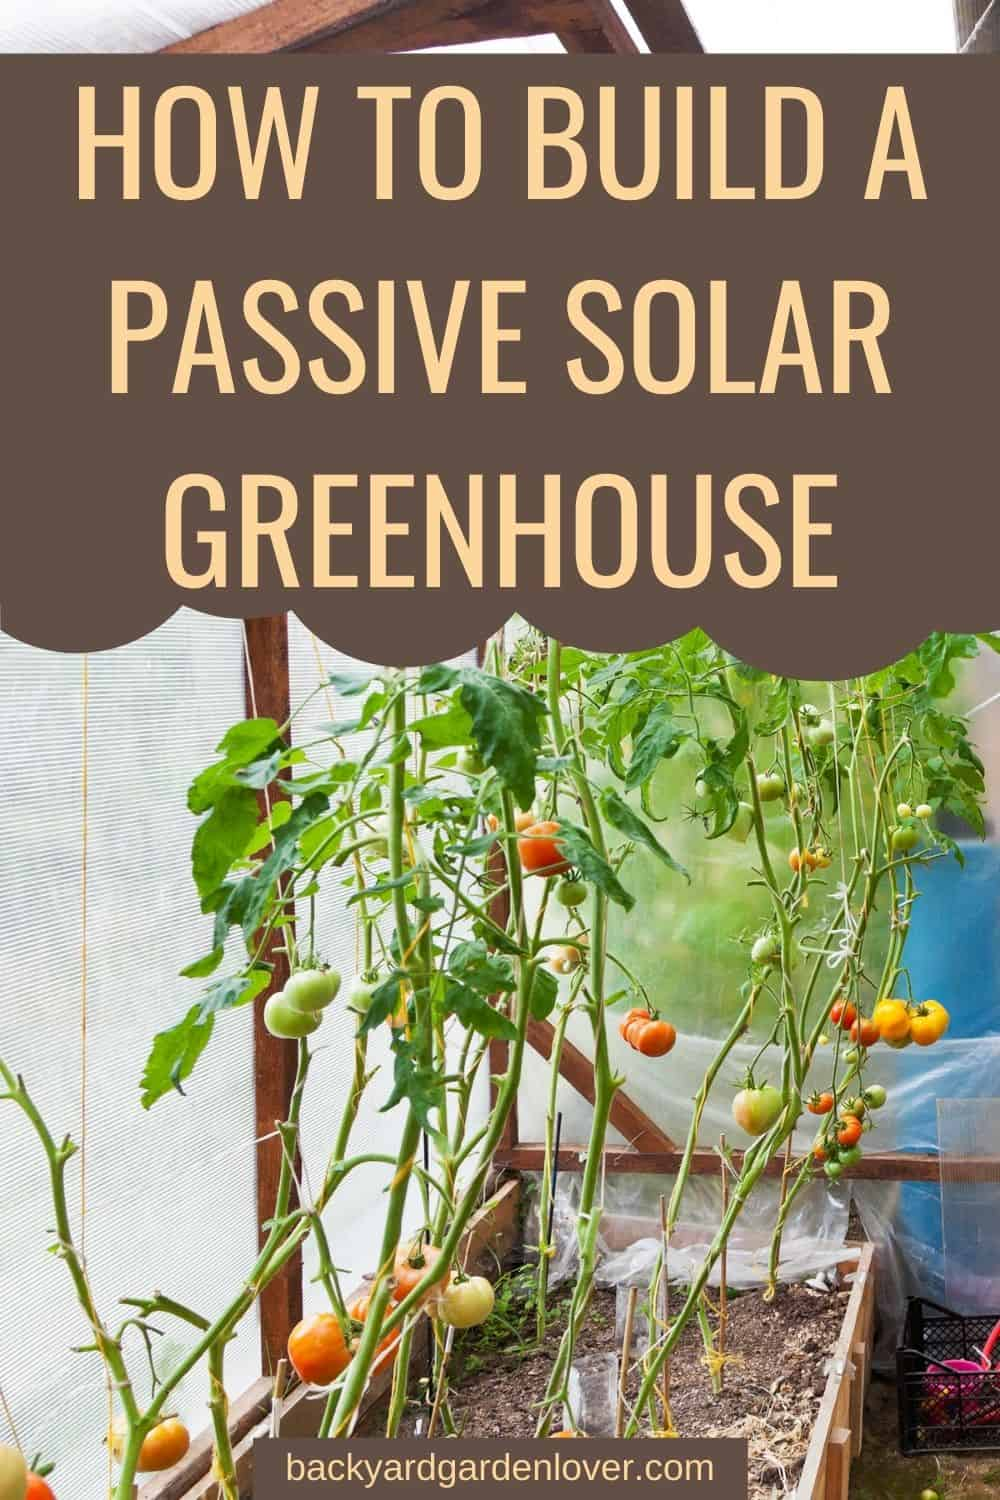 How to build a passive solar greenhouse - Pinterest image